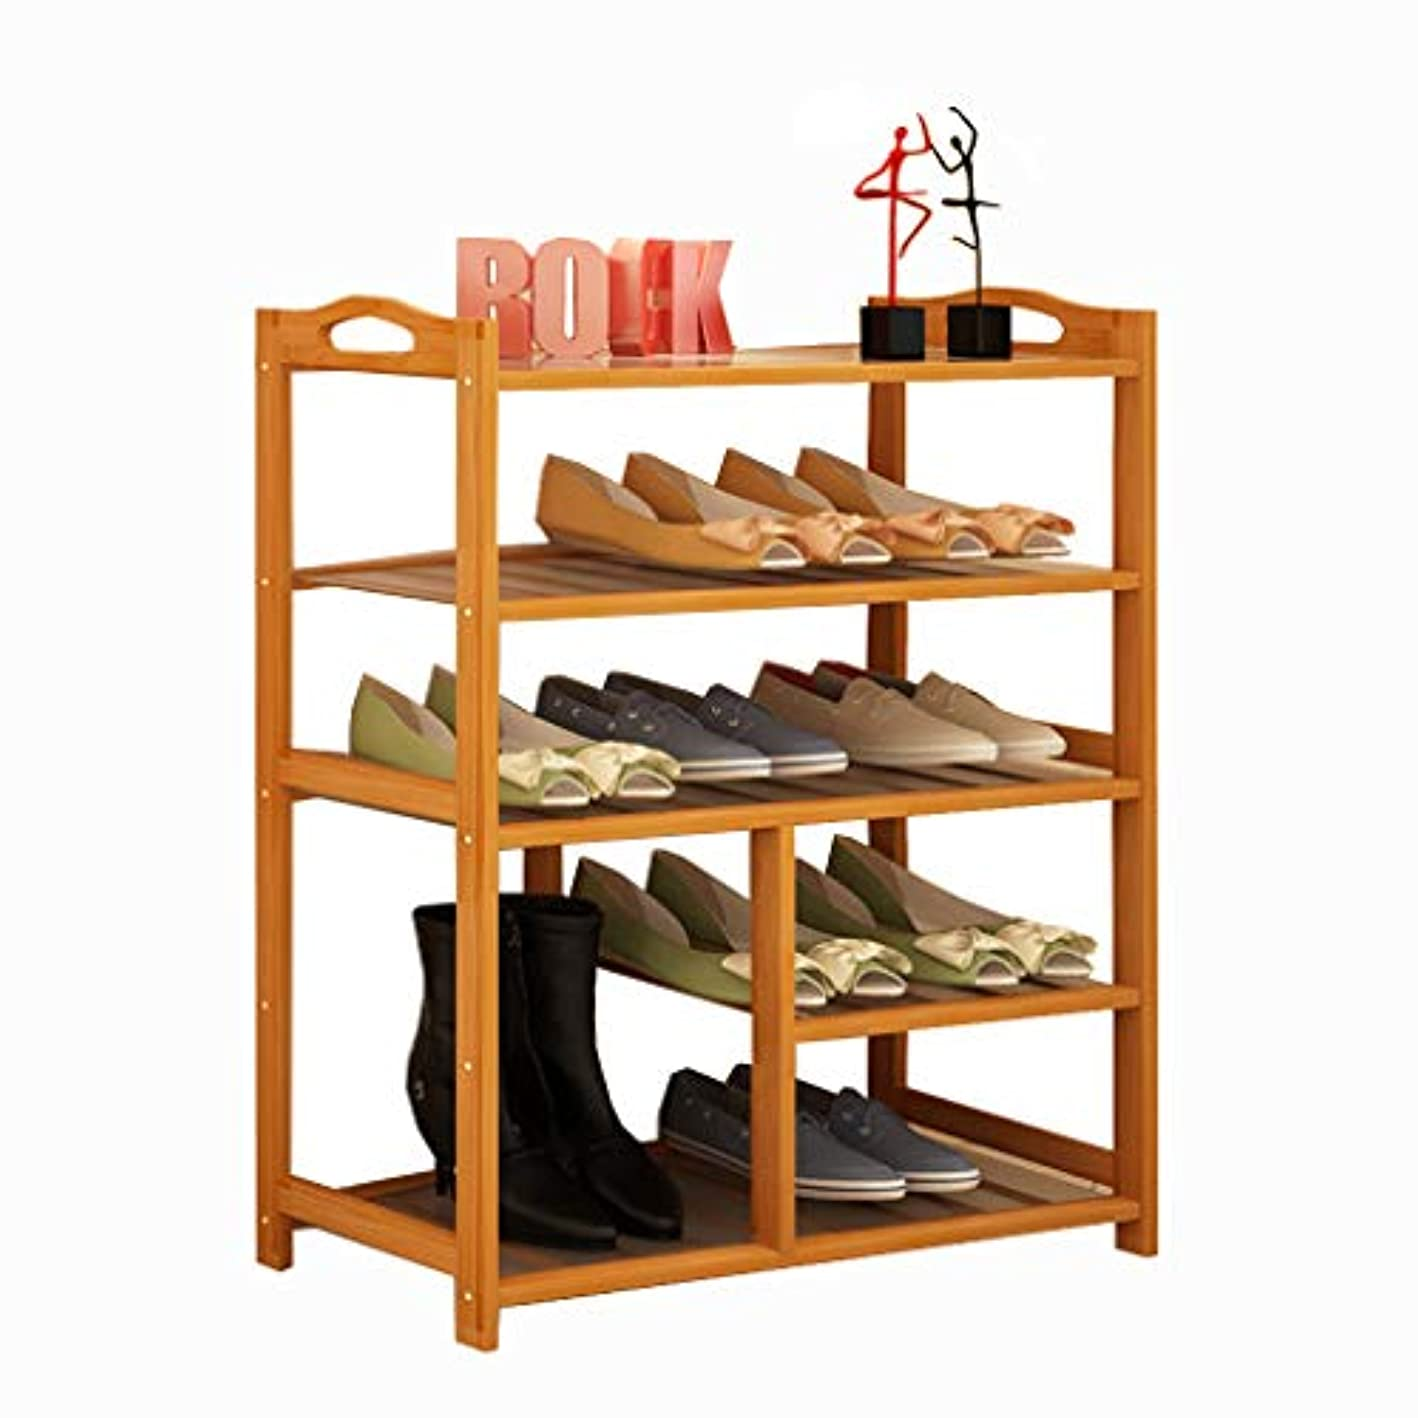 Bamboo Shoe Rack 5-Tier Storage Shelf for Entryway Hallway Bathroom for Boots Heels Bag Holder Stand Organizer Furniture